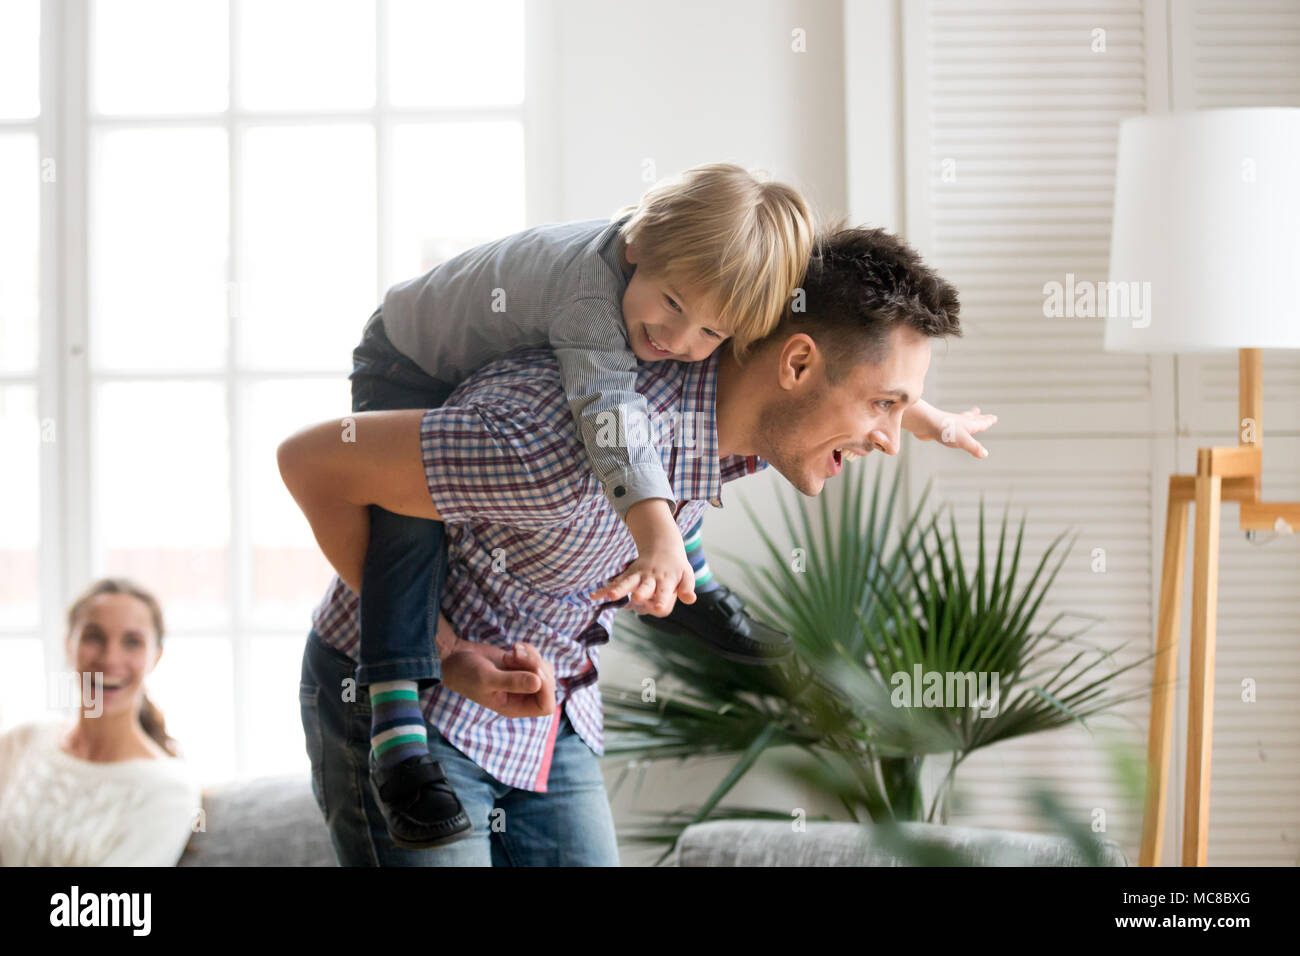 Happy dad holding little cute kid boy on back giving child piggyback ride having fun together at home, cheerful father playing with excited preschool  - Stock Image